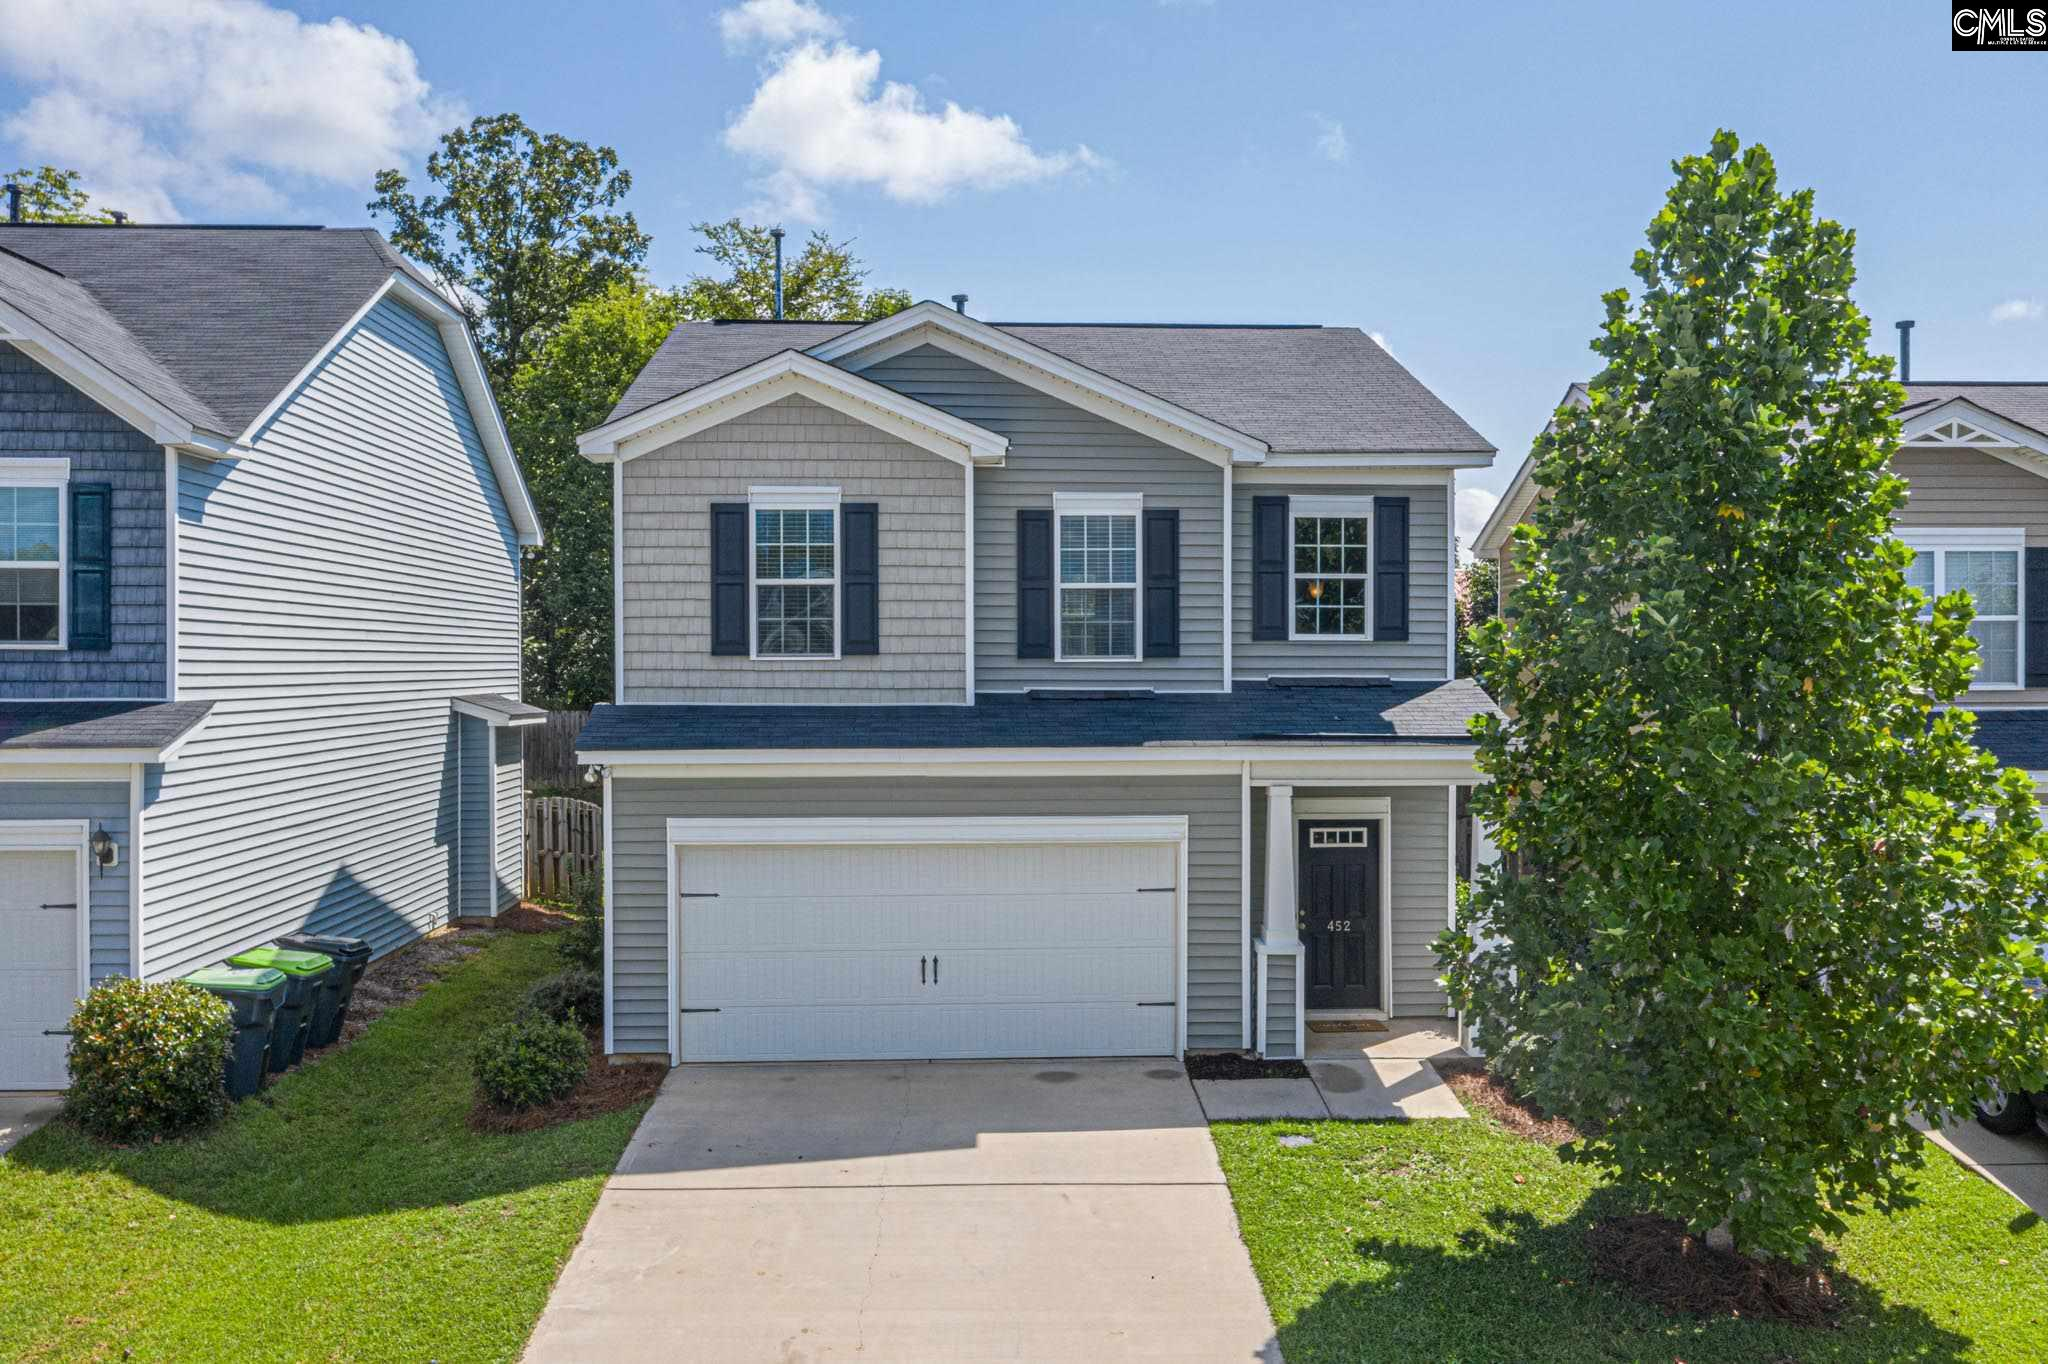 452 Whispering Oak Chapin, SC 29036